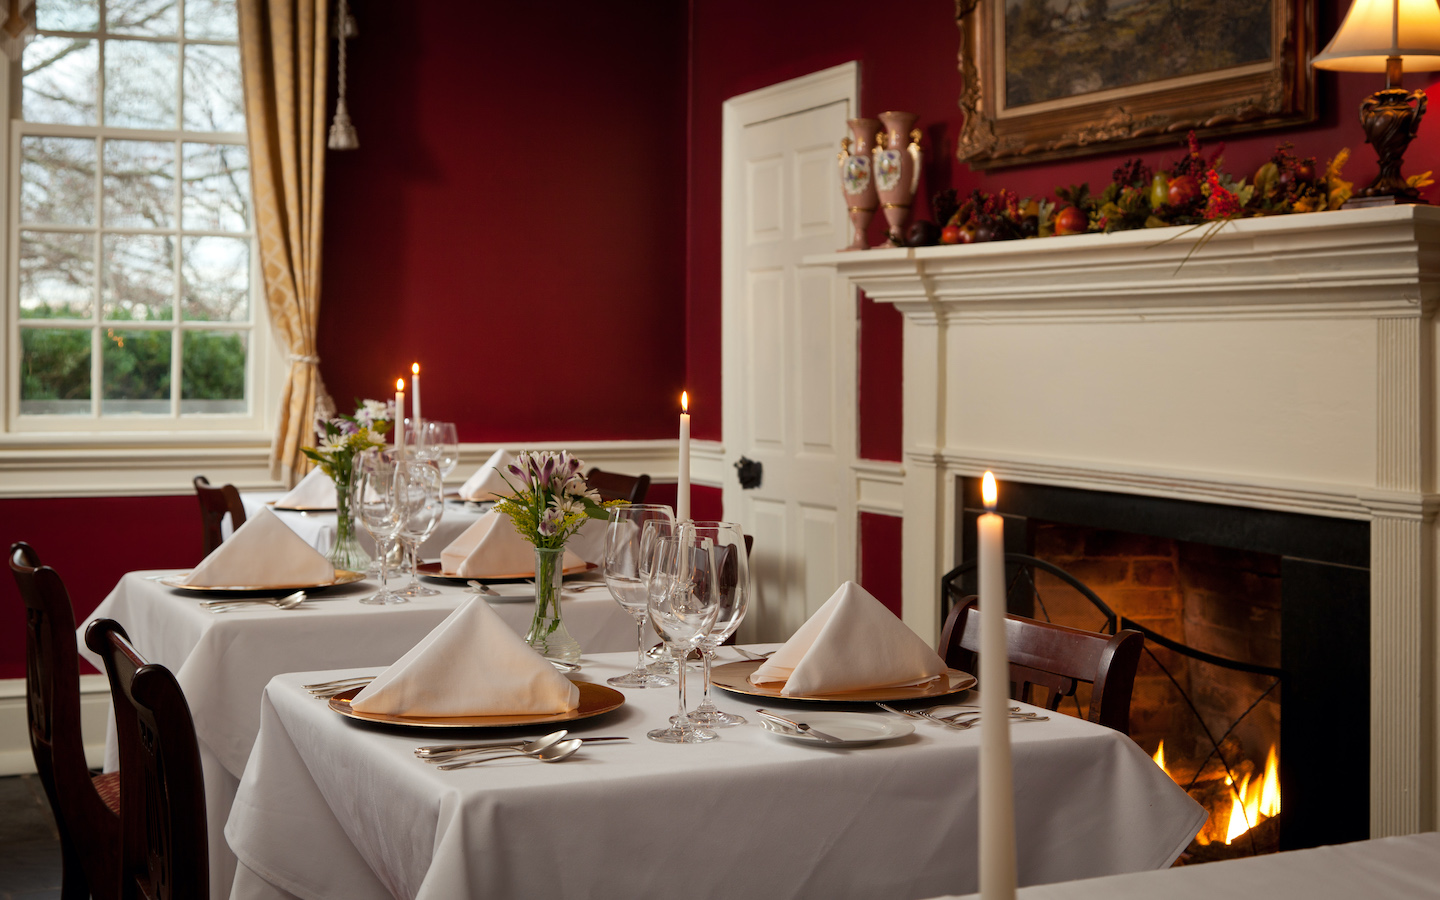 Enjoy casual dinning in our Colonial inspired tavern